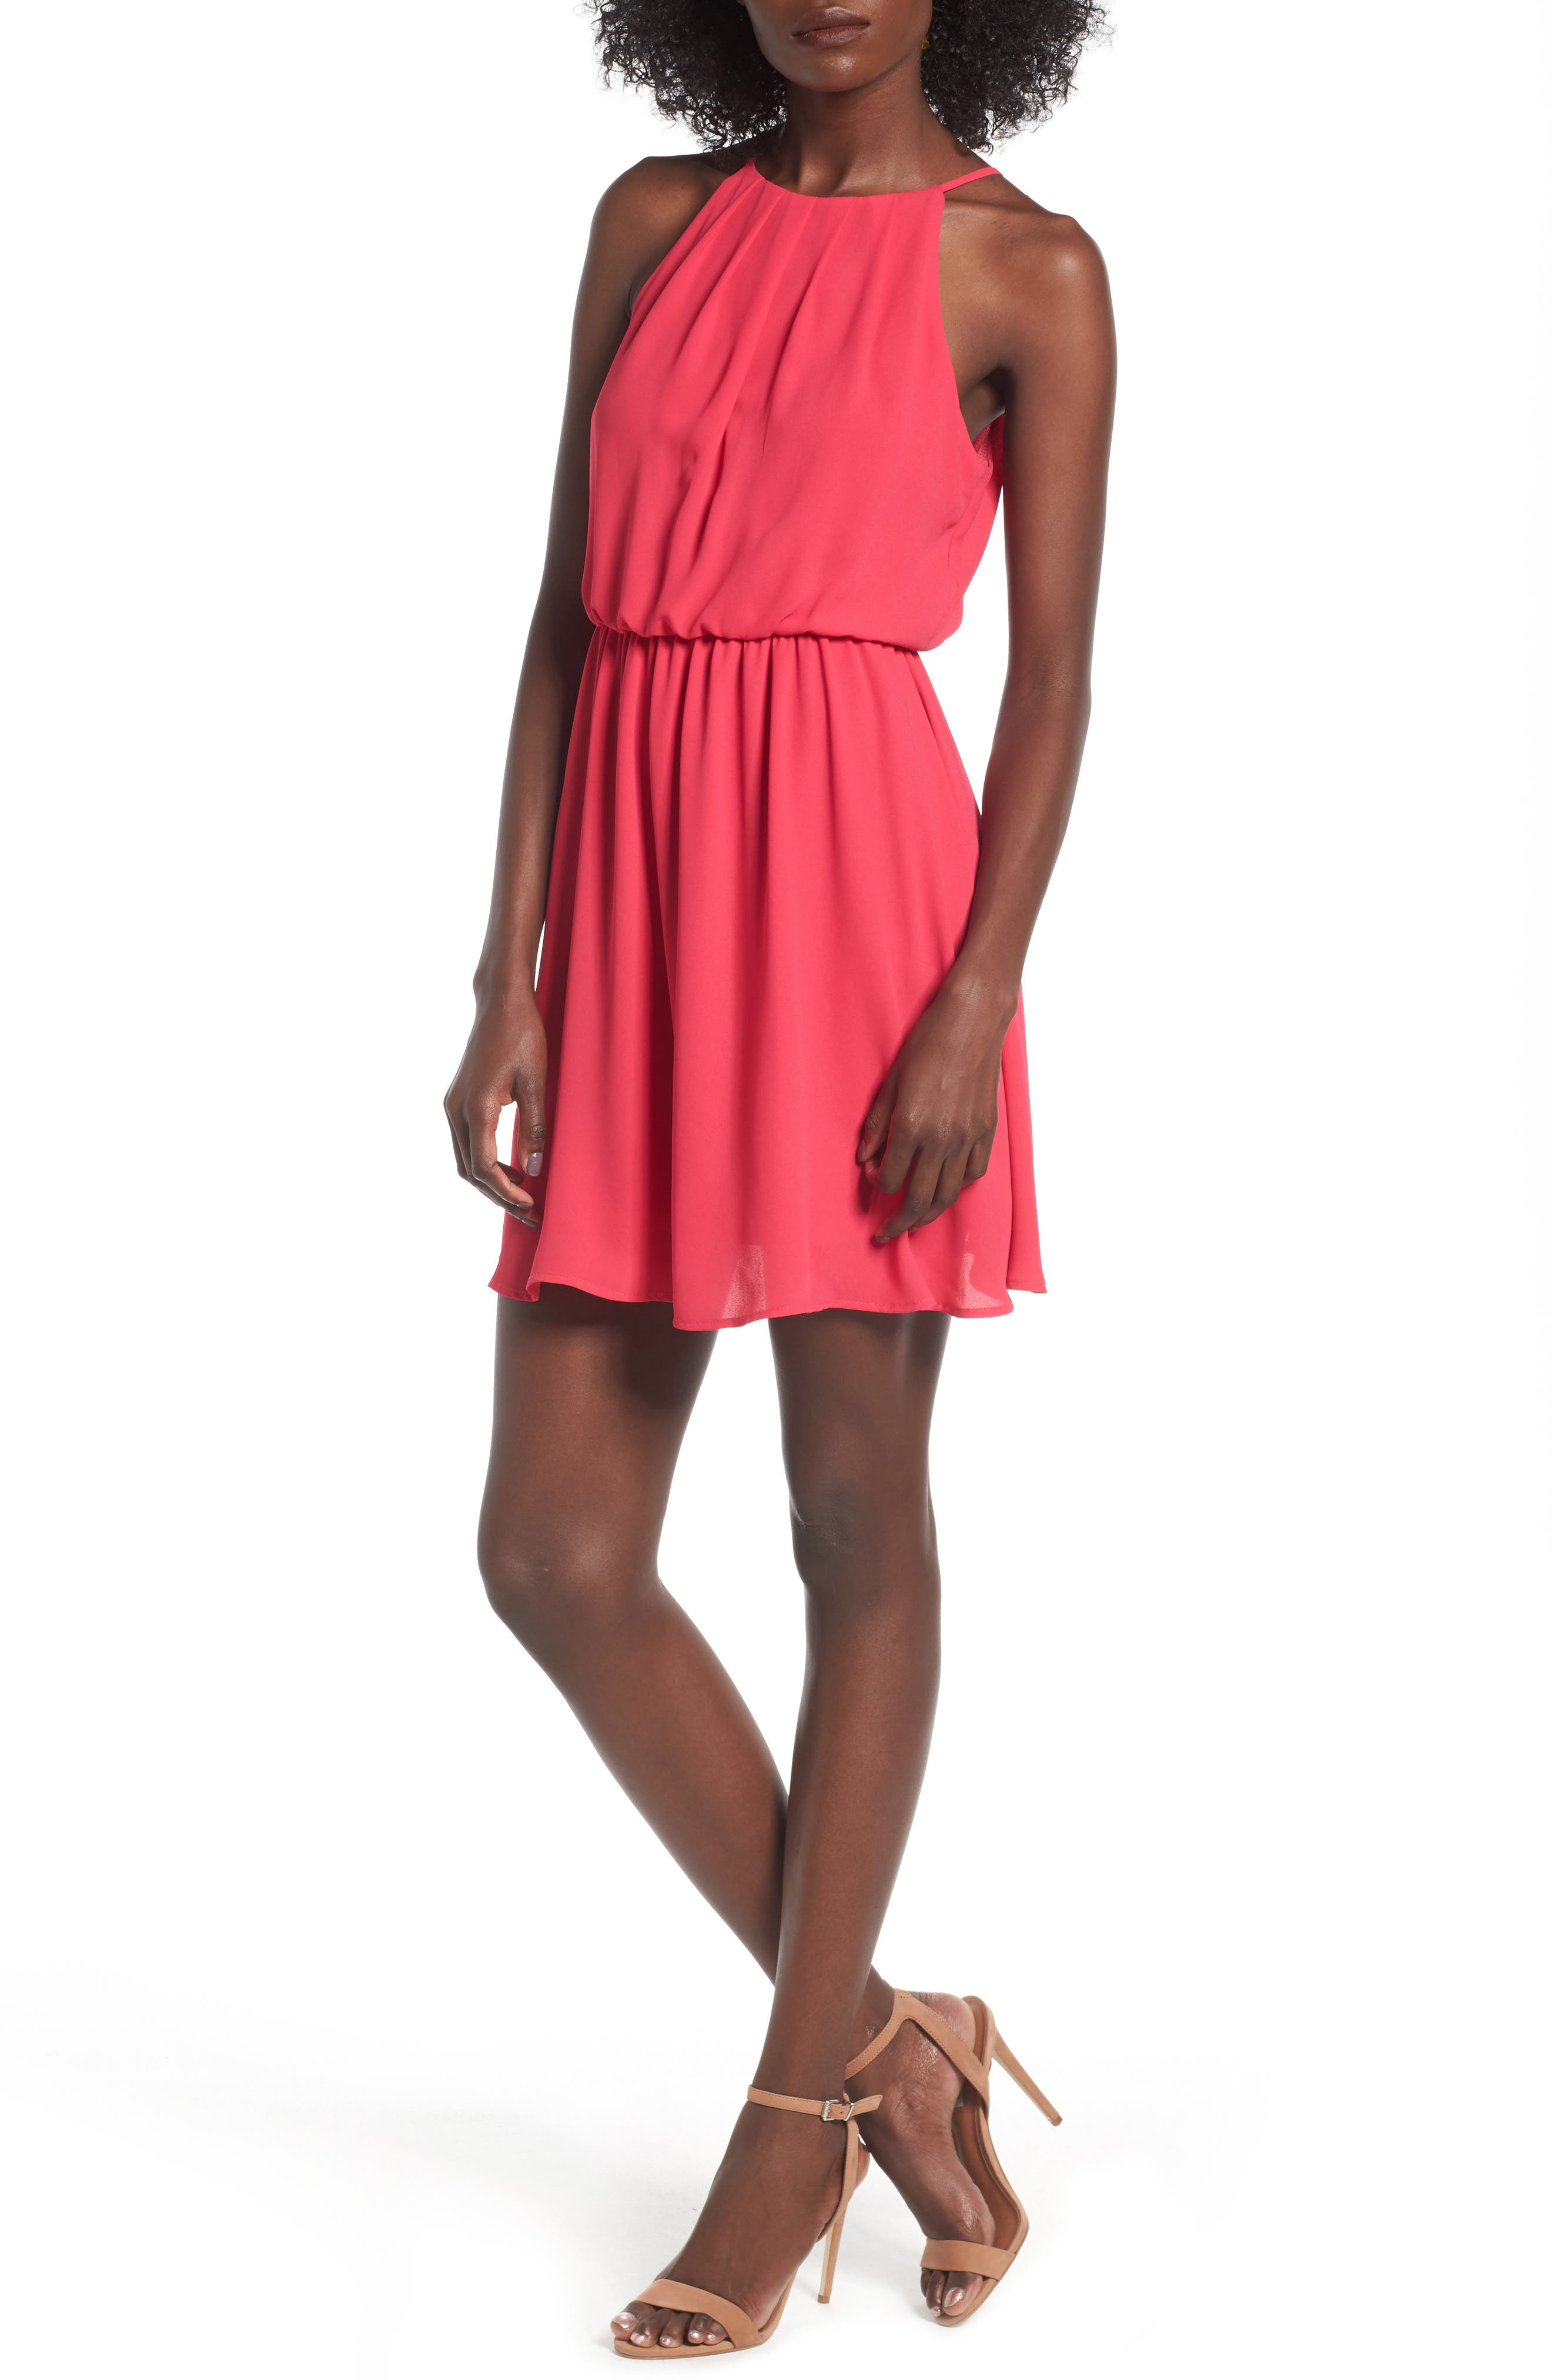 Main Image - Blouson Chiffon Skater Dress